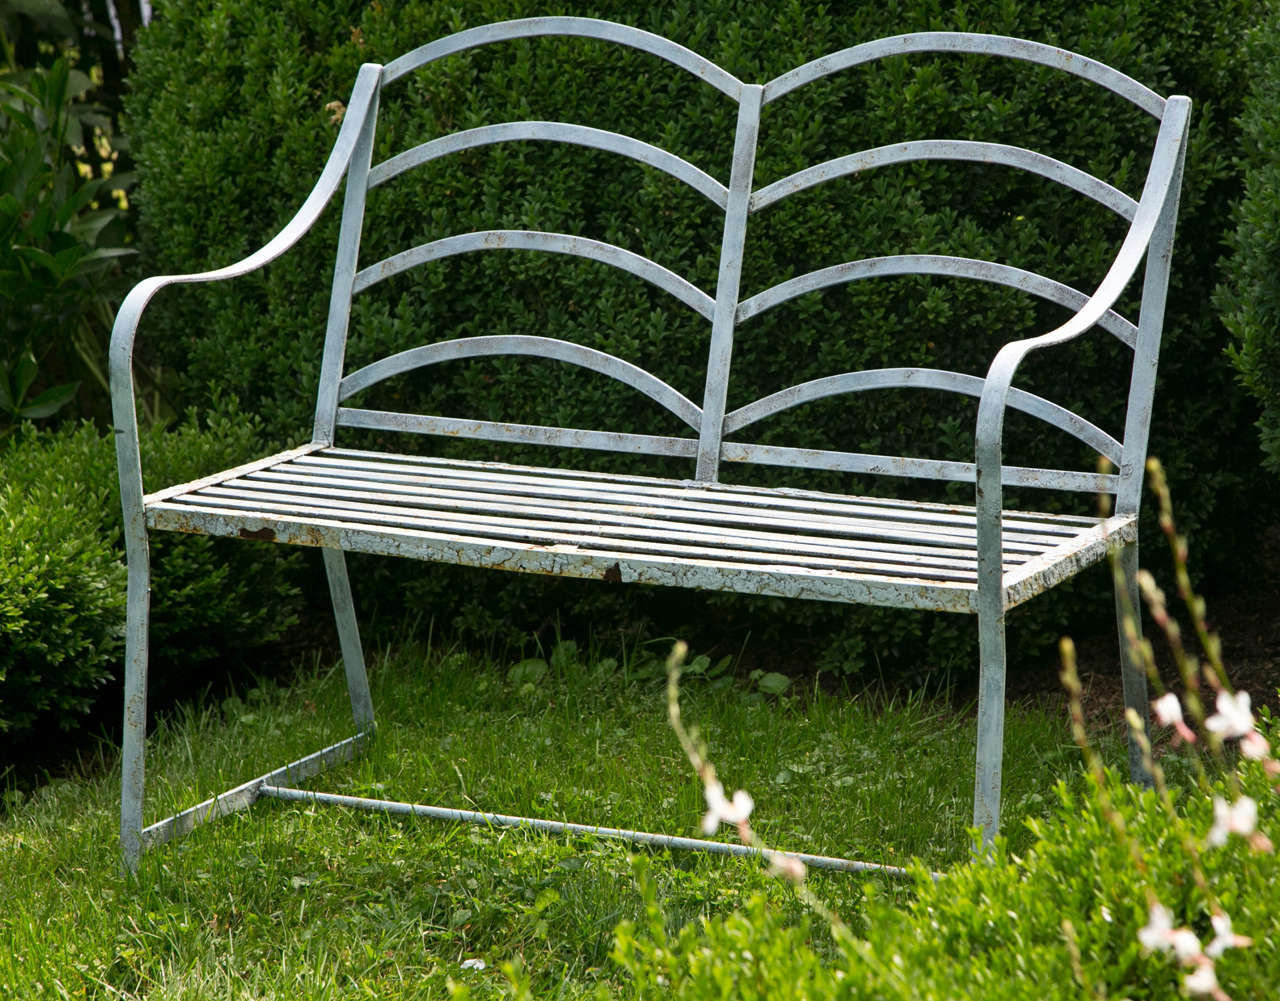 A small wrought-iron Regency-style seat.